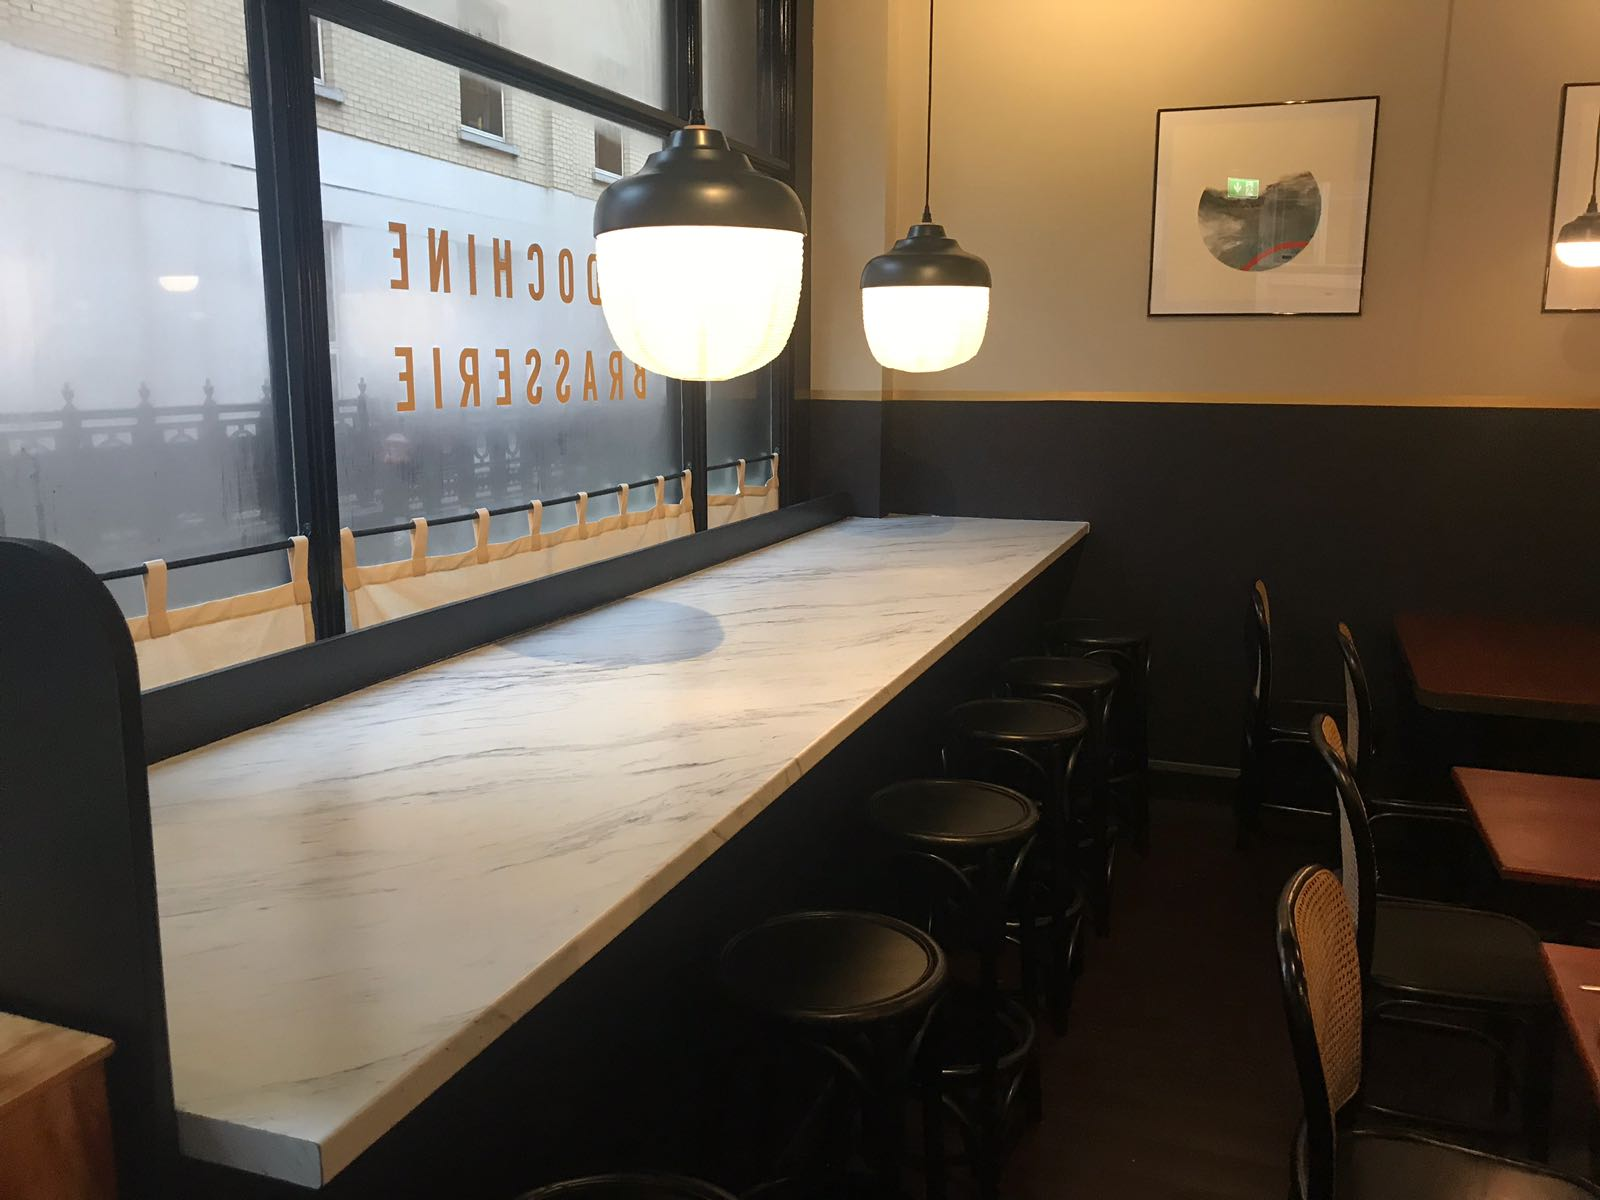 Counters and seating